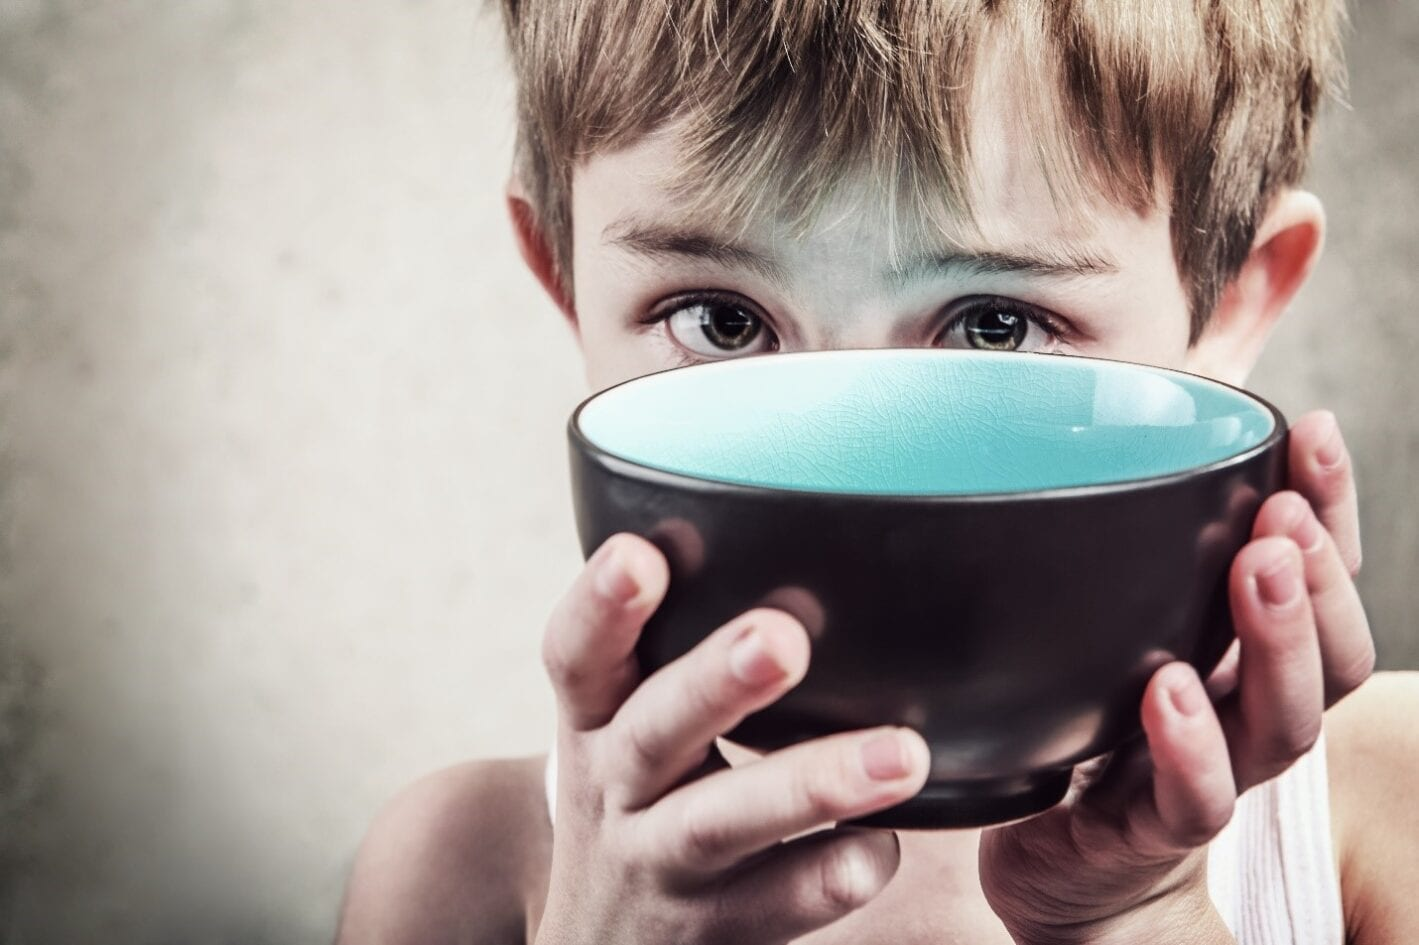 Kid with bowl